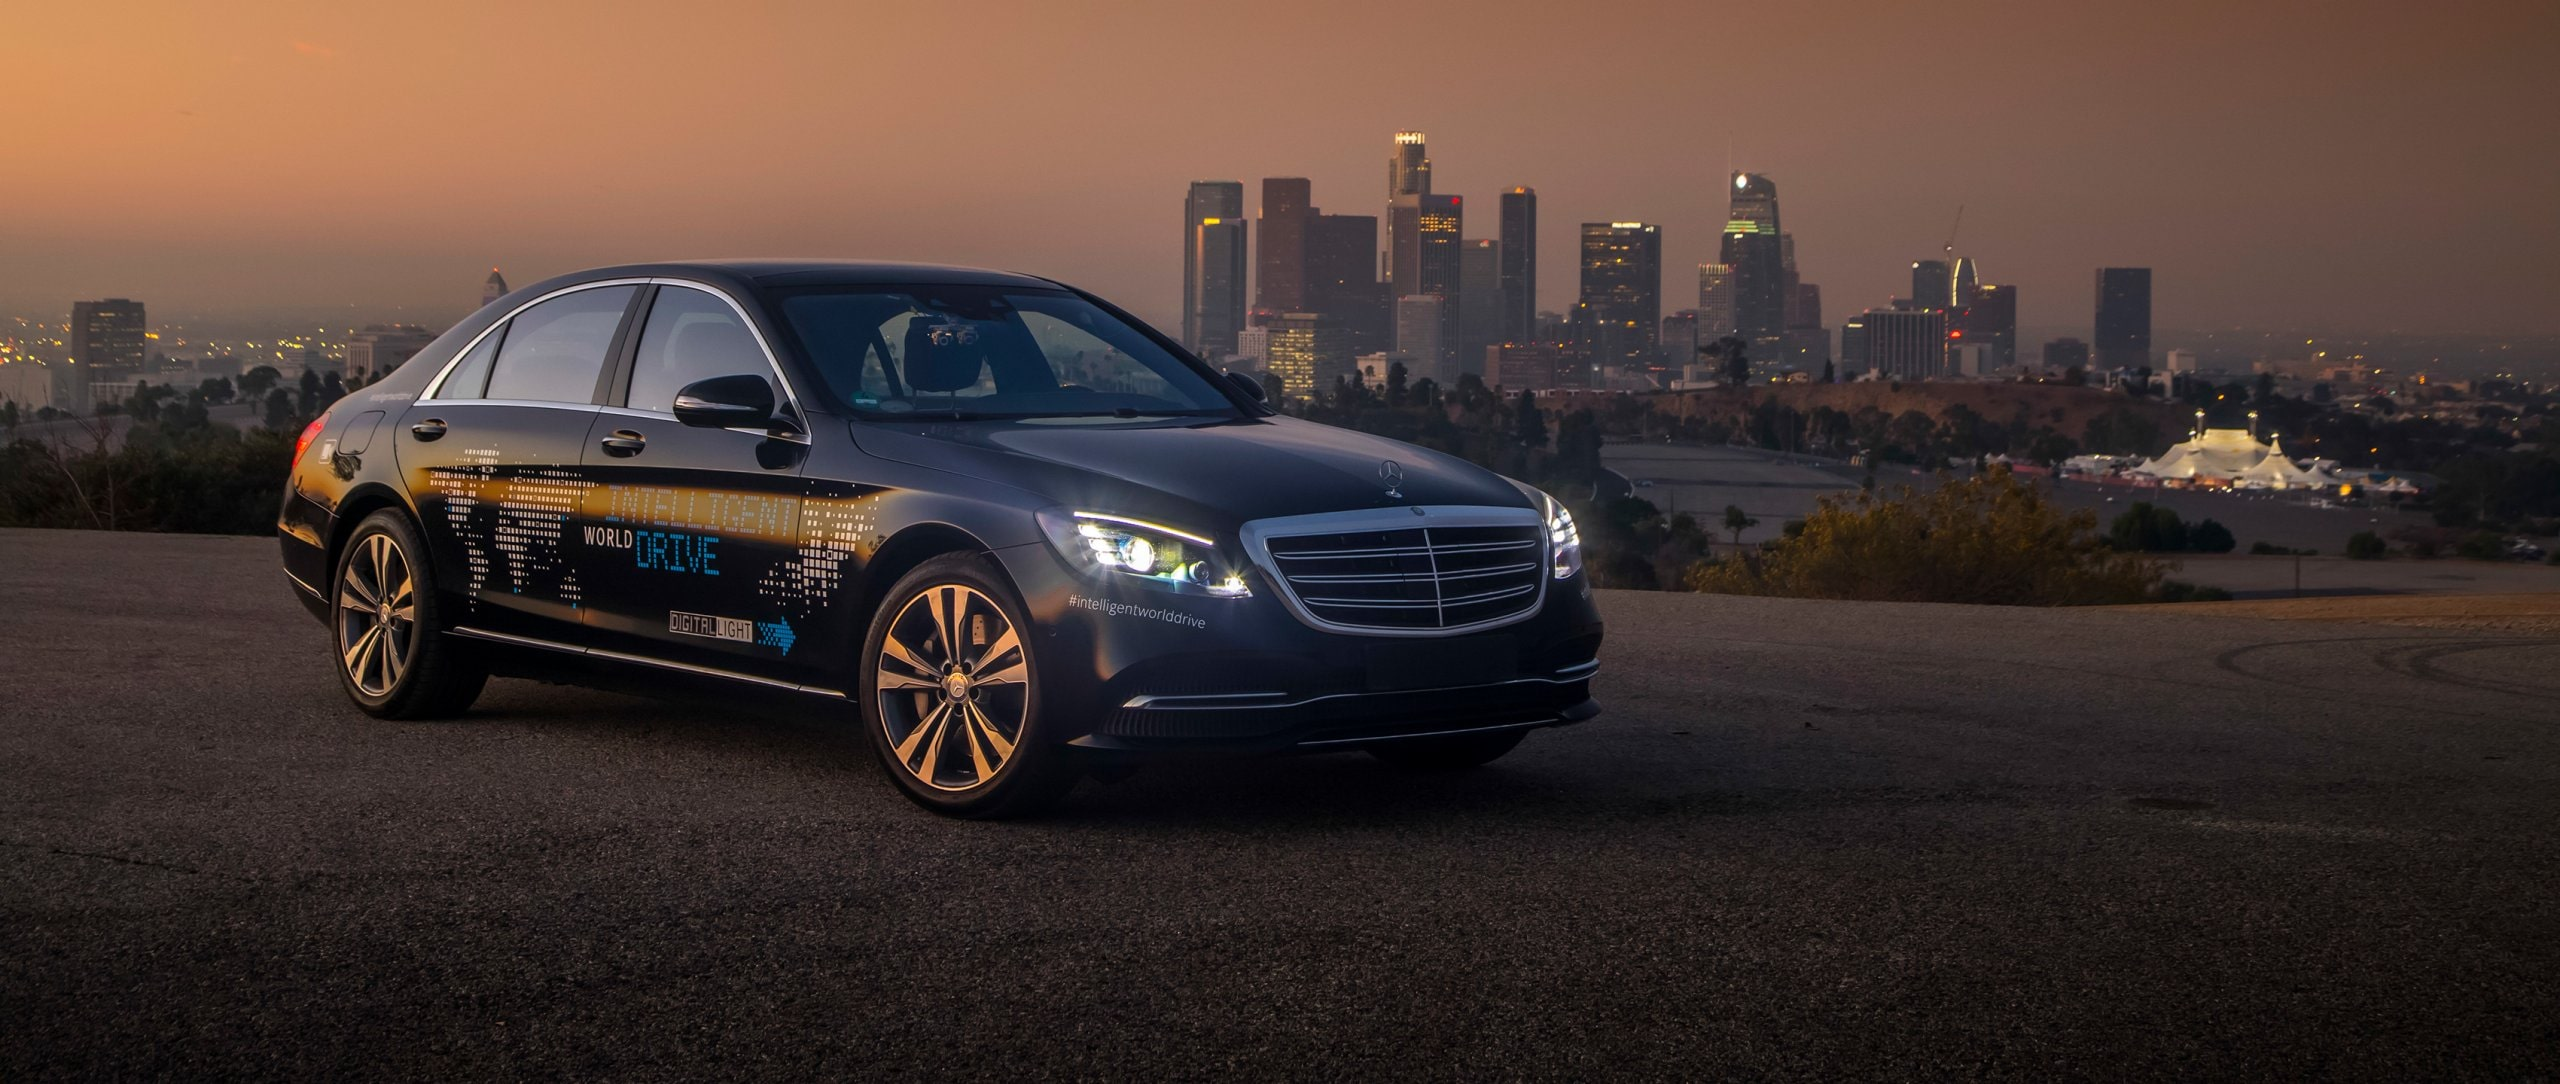 The Mercedes-Benz S-Class in black in front of a skyline.